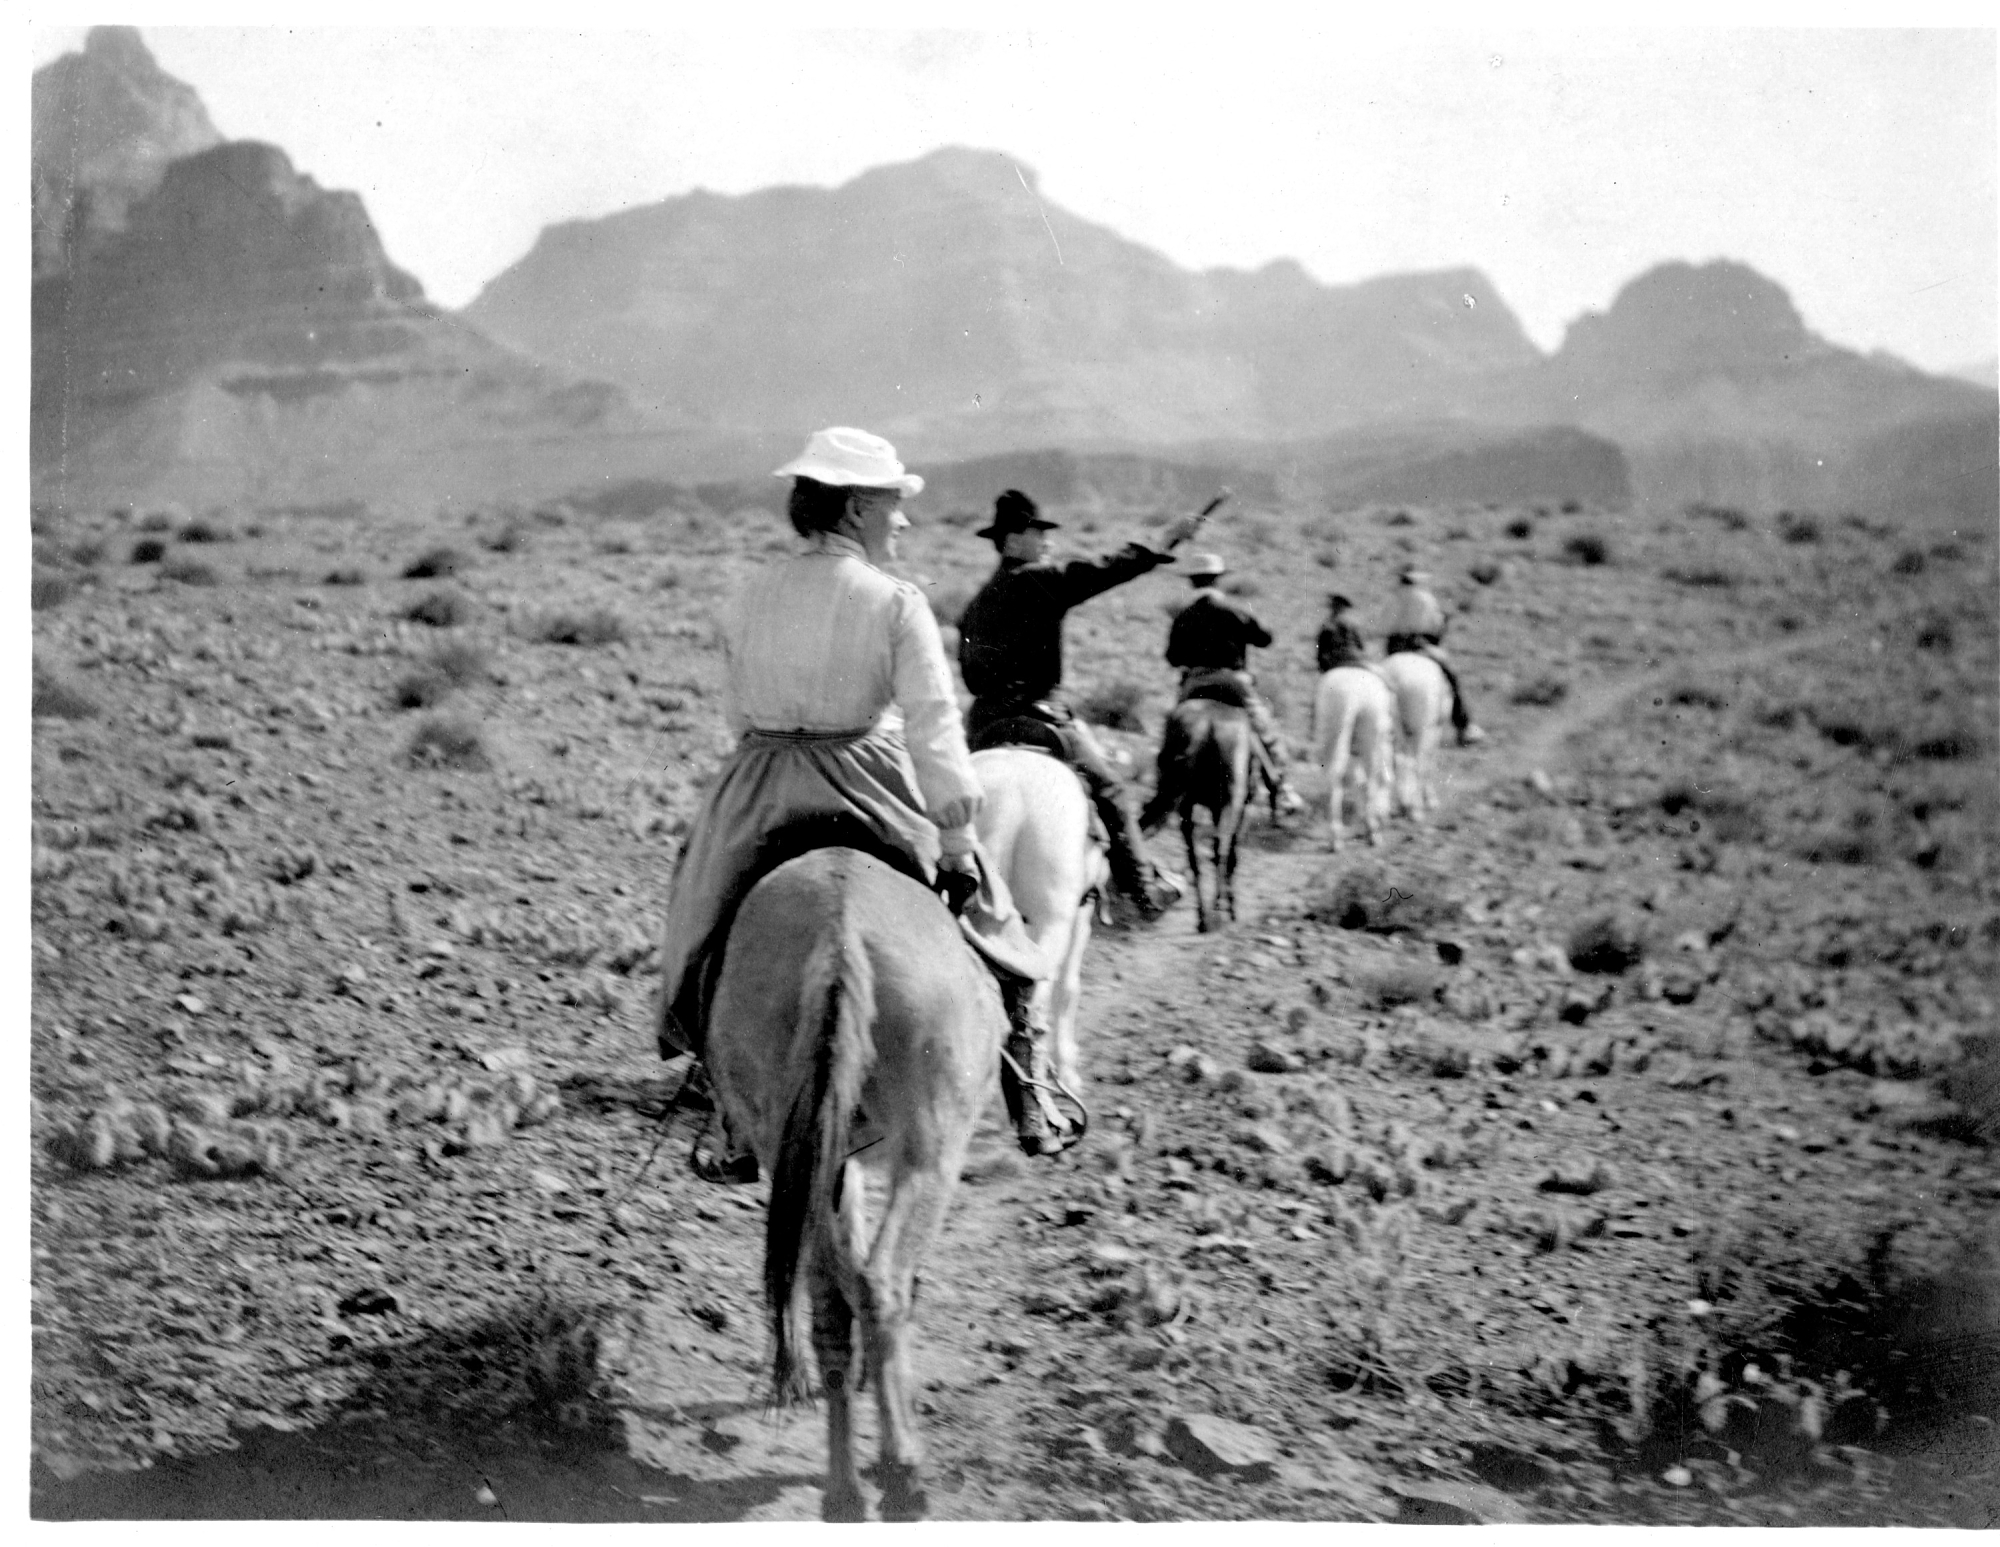 Smithsonian Secretary Charles D. Walcott and his family riding horses through the Grand Canyon, May